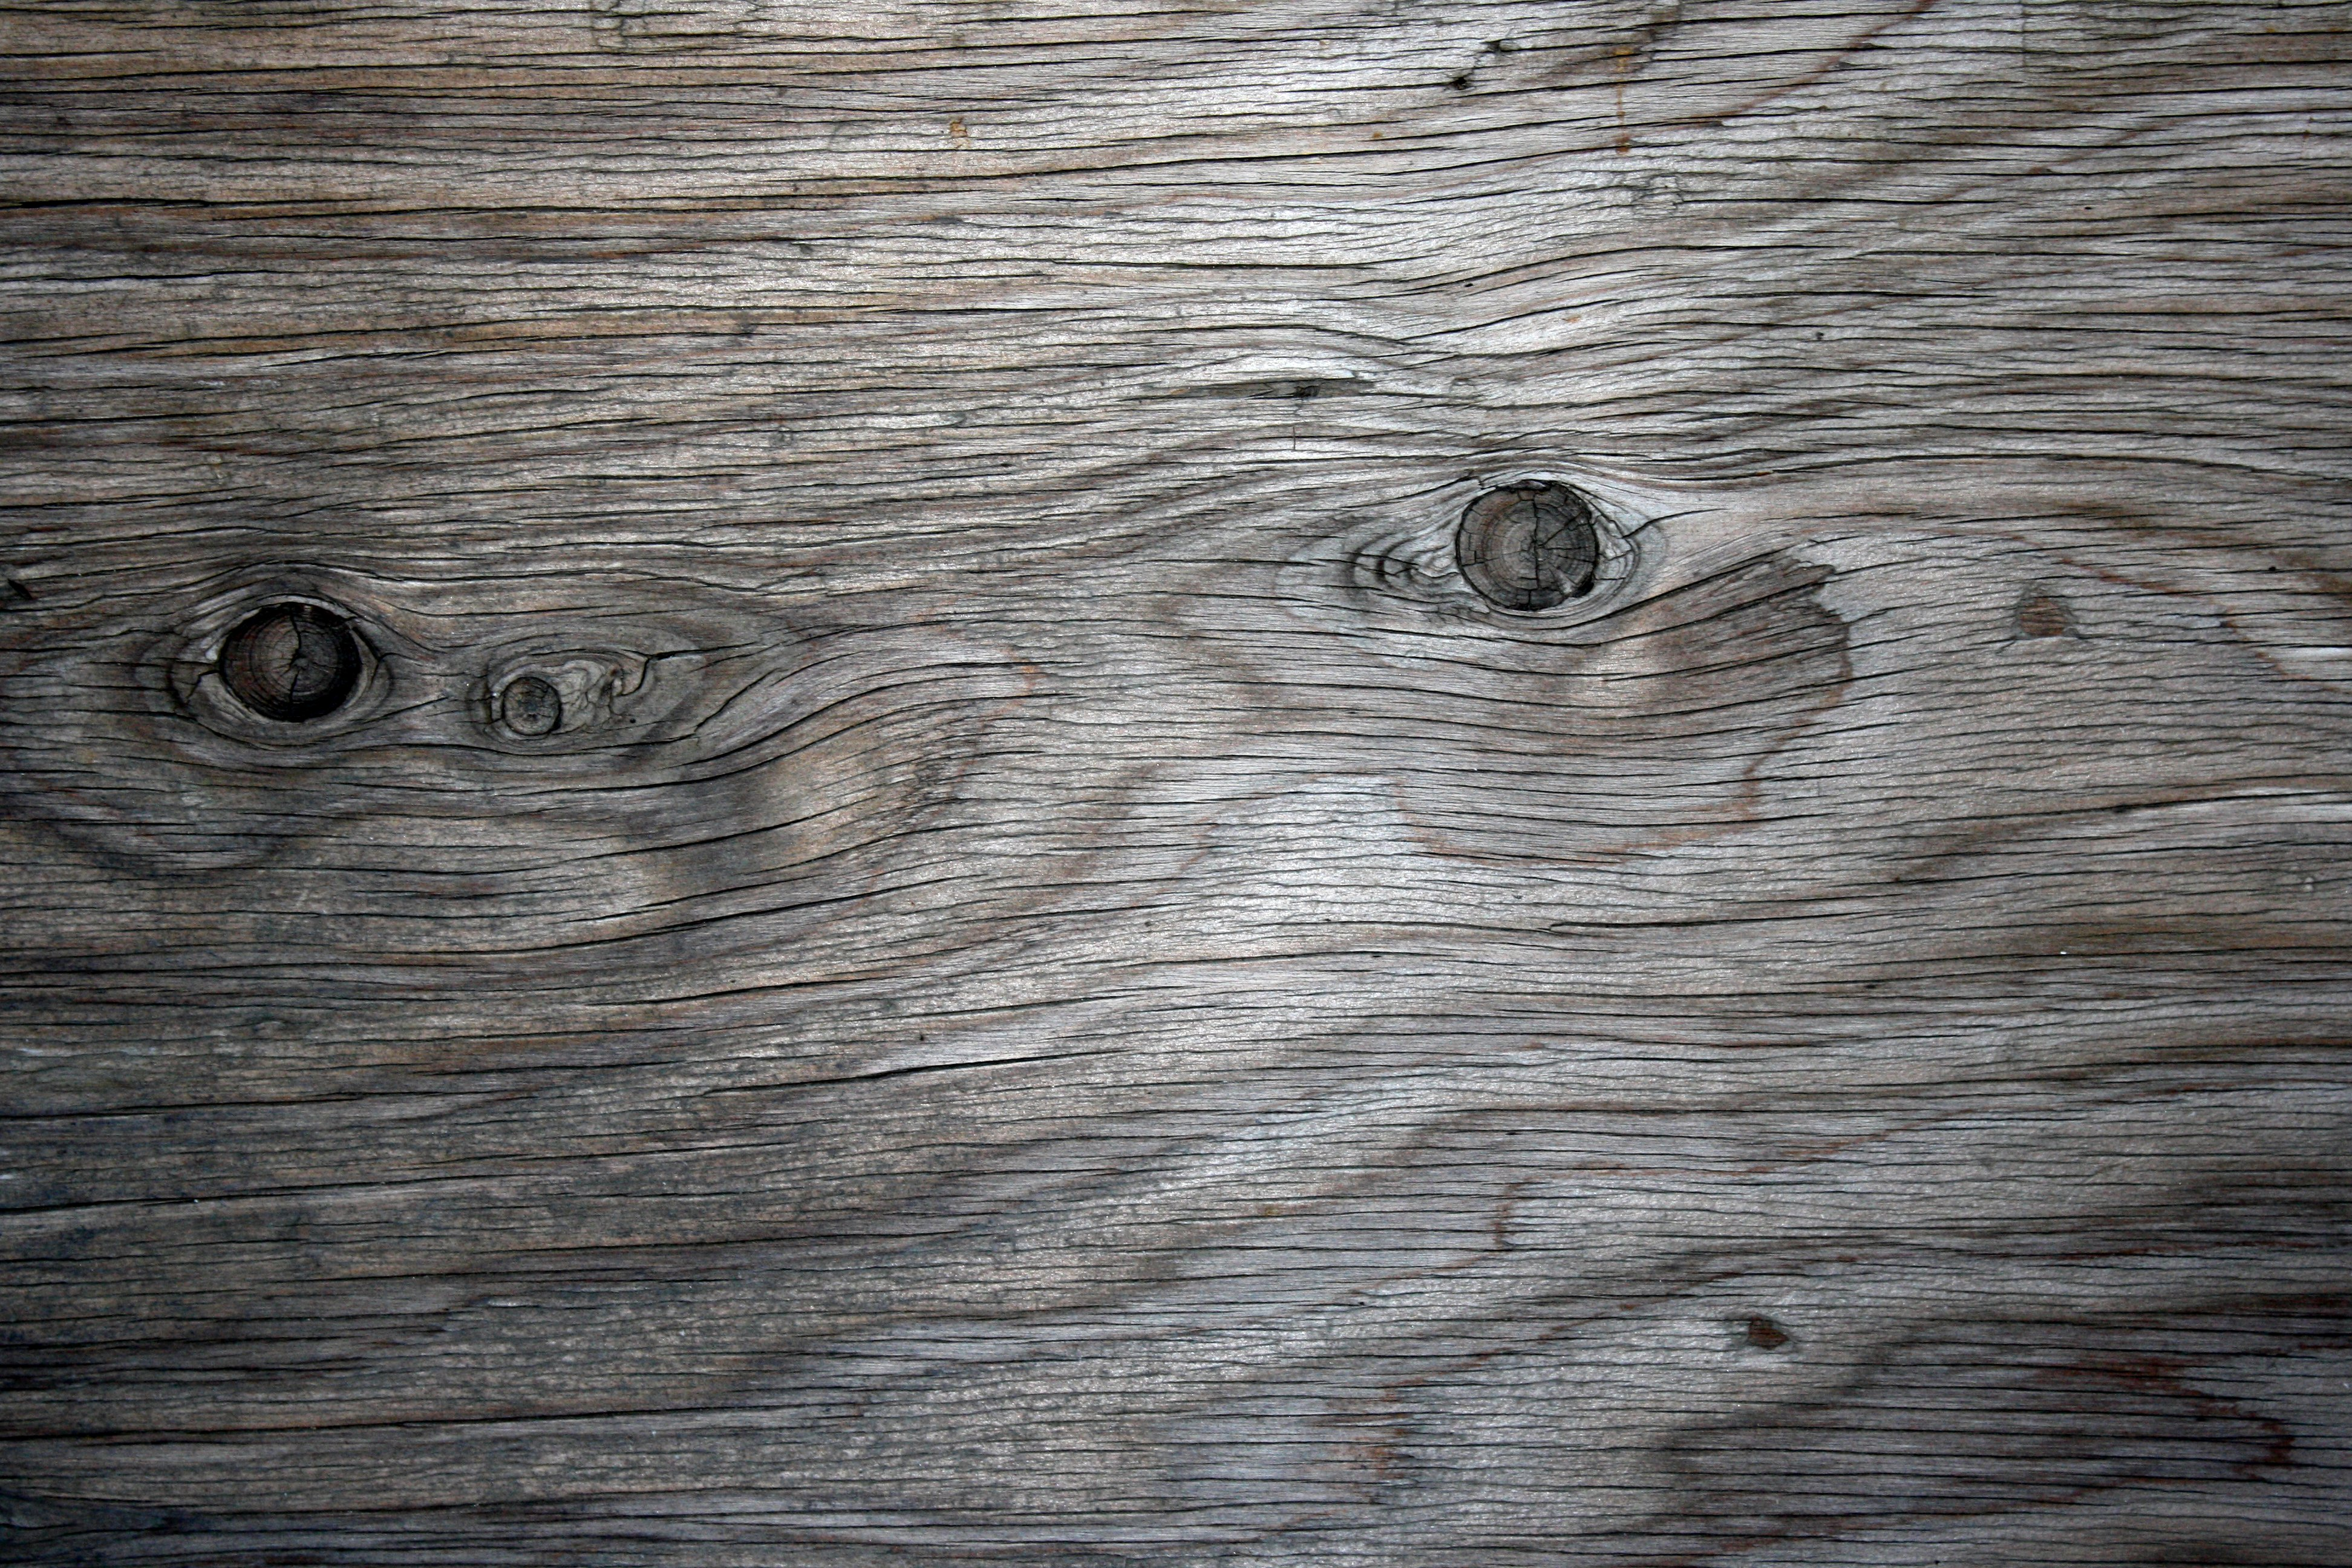 weathered wood grain texture picture free photograph photos